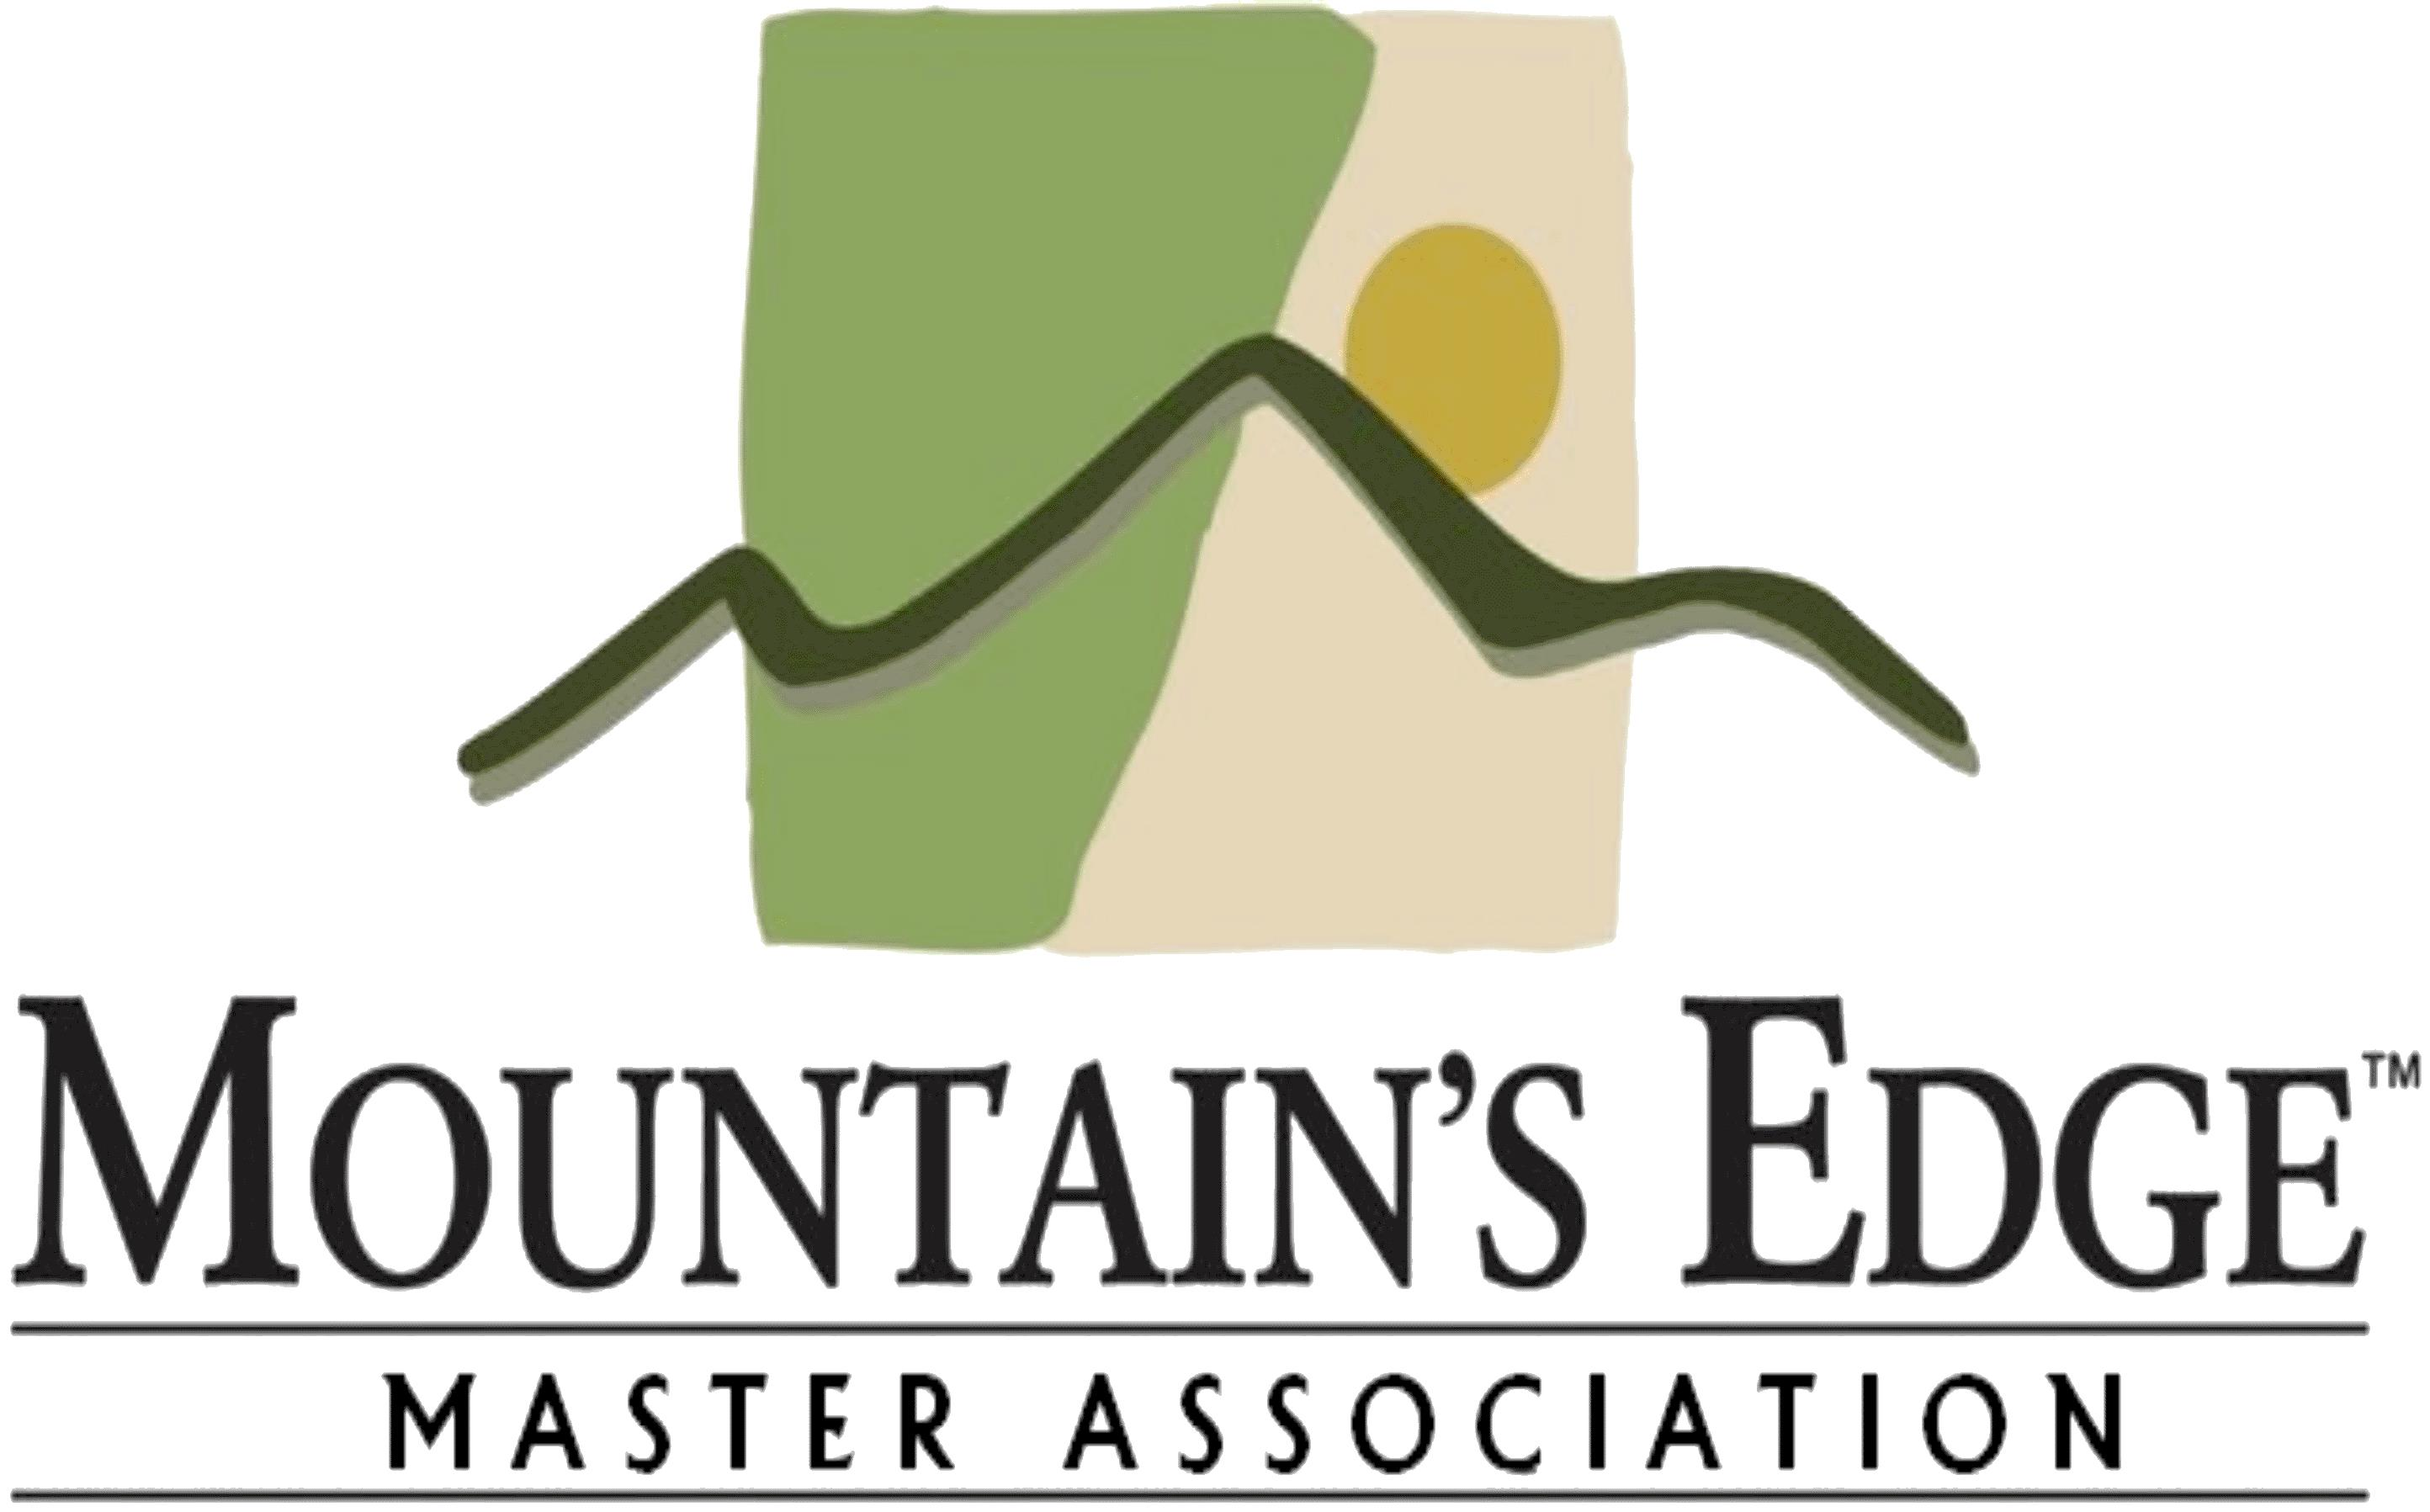 Mountain's Edge Master Association